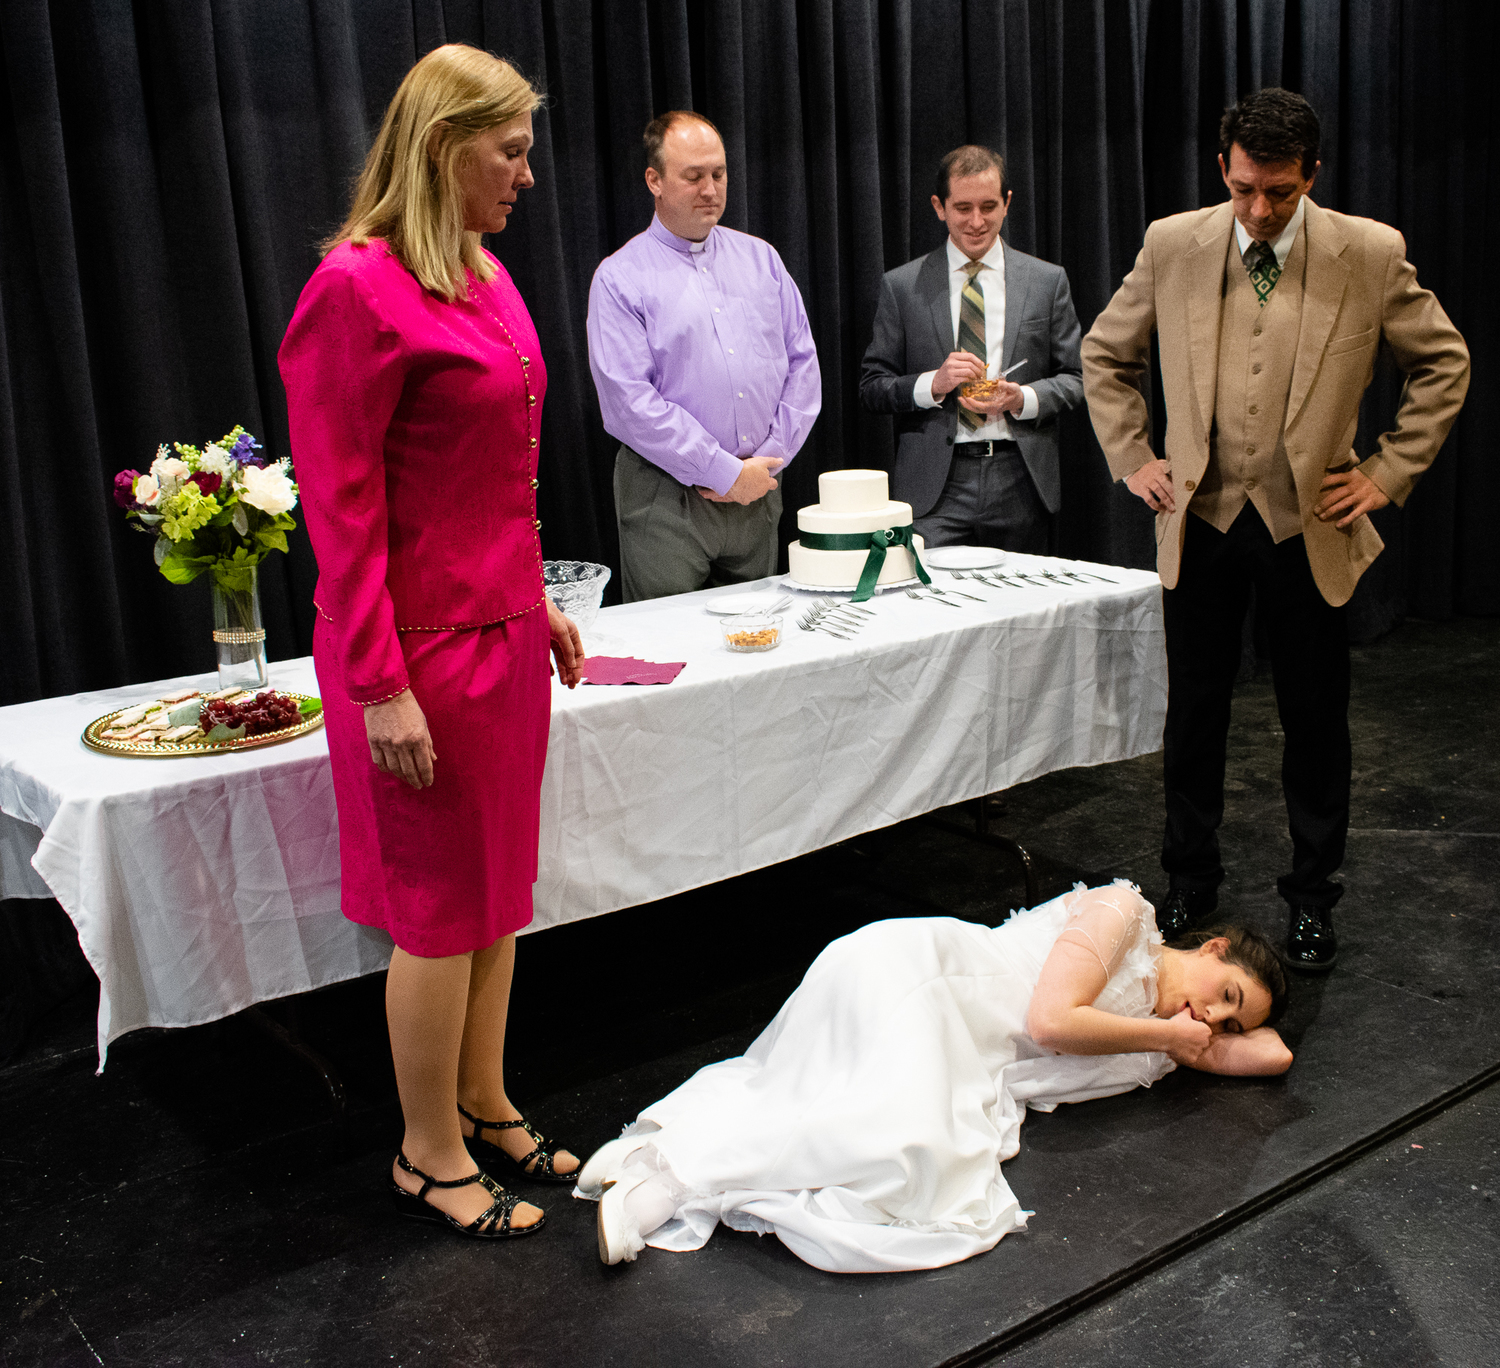 BWW Review: HAPPILY EVER AFTER: A WEDDING COMEDY at Ankeny Community Theatre-A Wedding Day to Remember